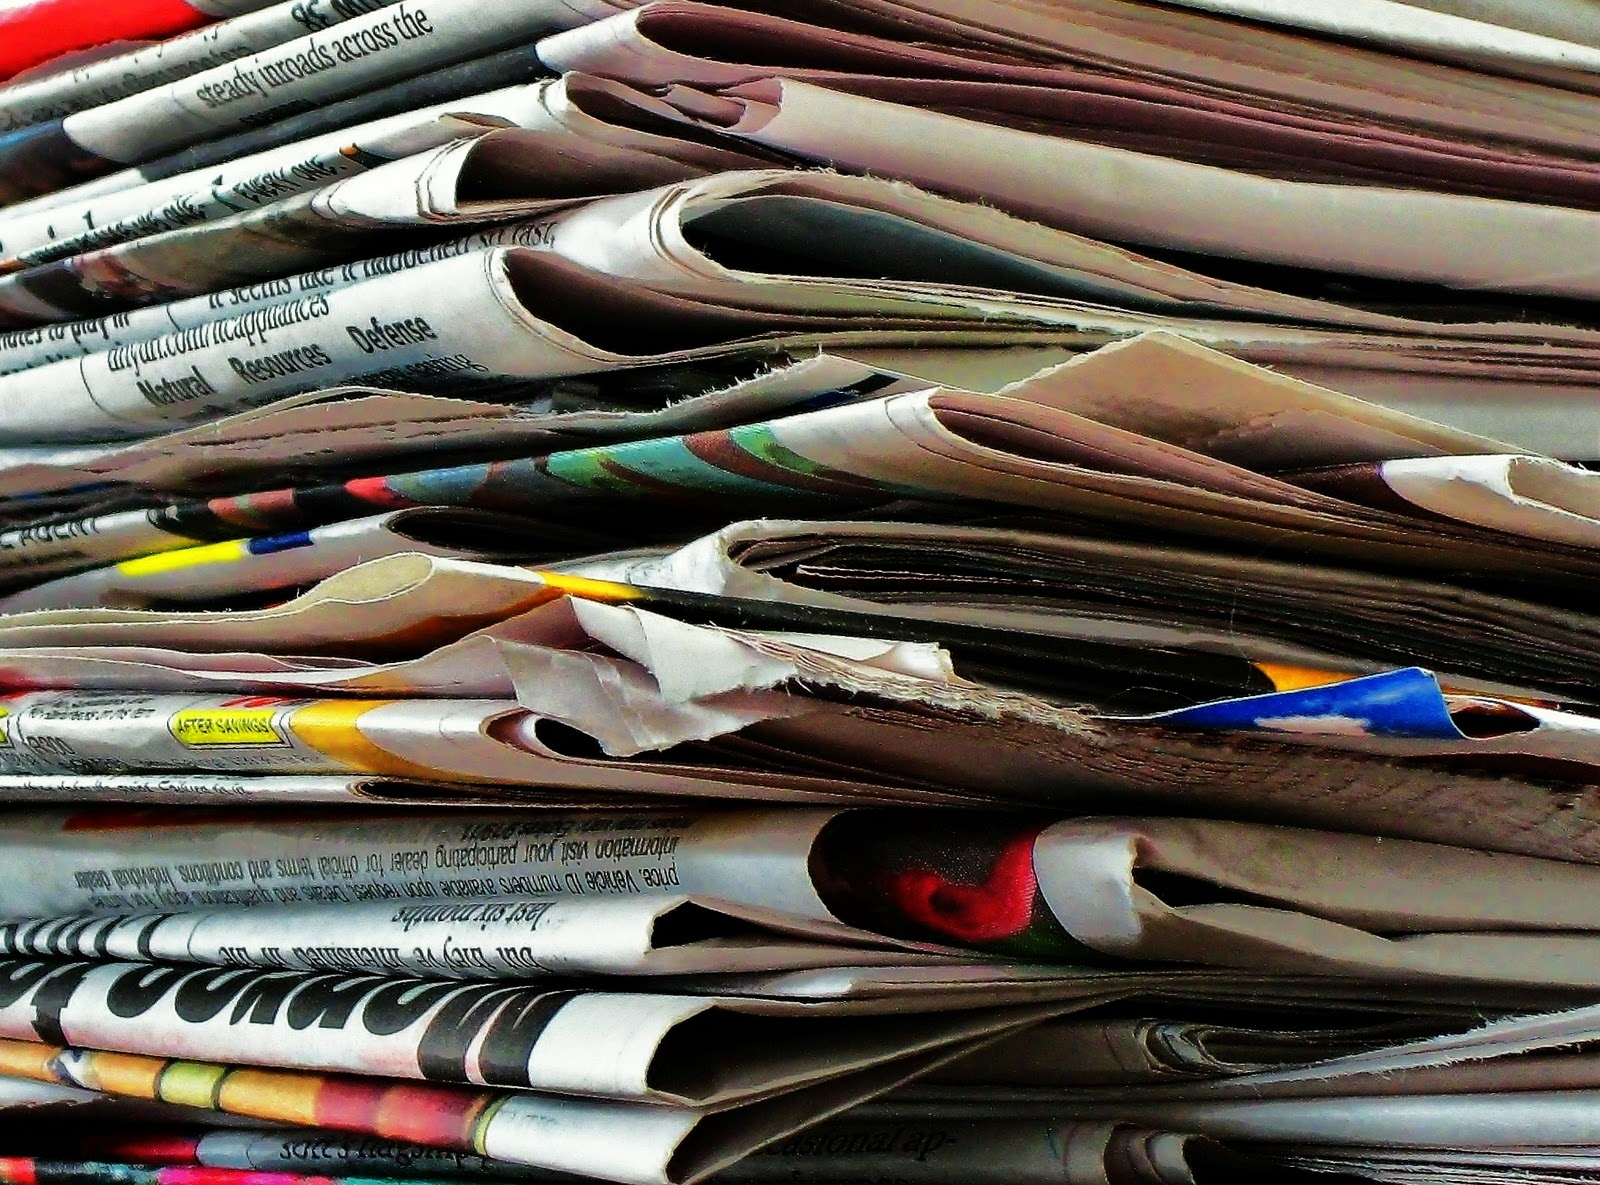 quality_press_releases_are_vital_to_gaining_coverage